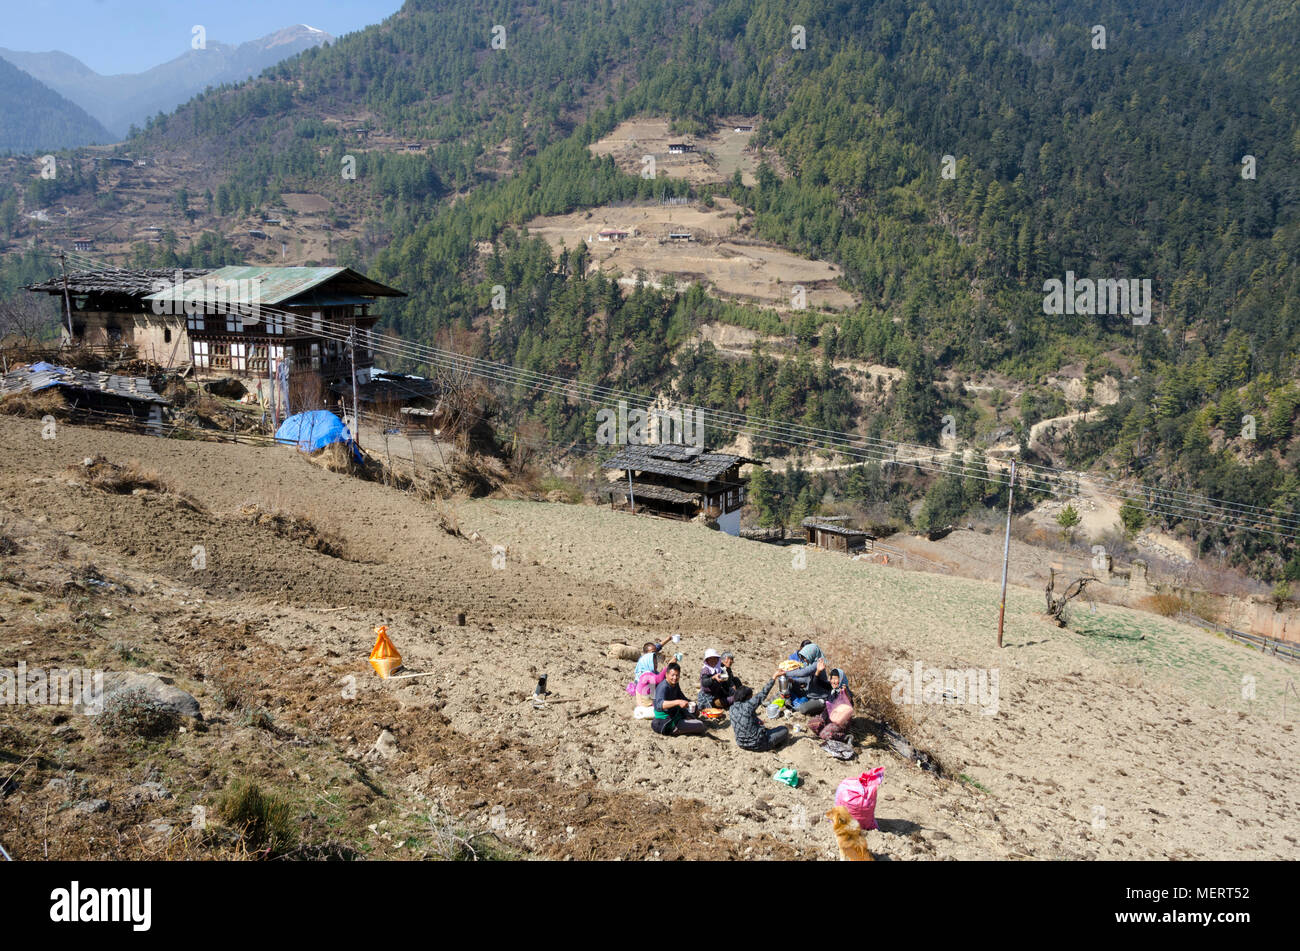 People planting potatoes in field, Haa Valley, Bhutan - Stock Image